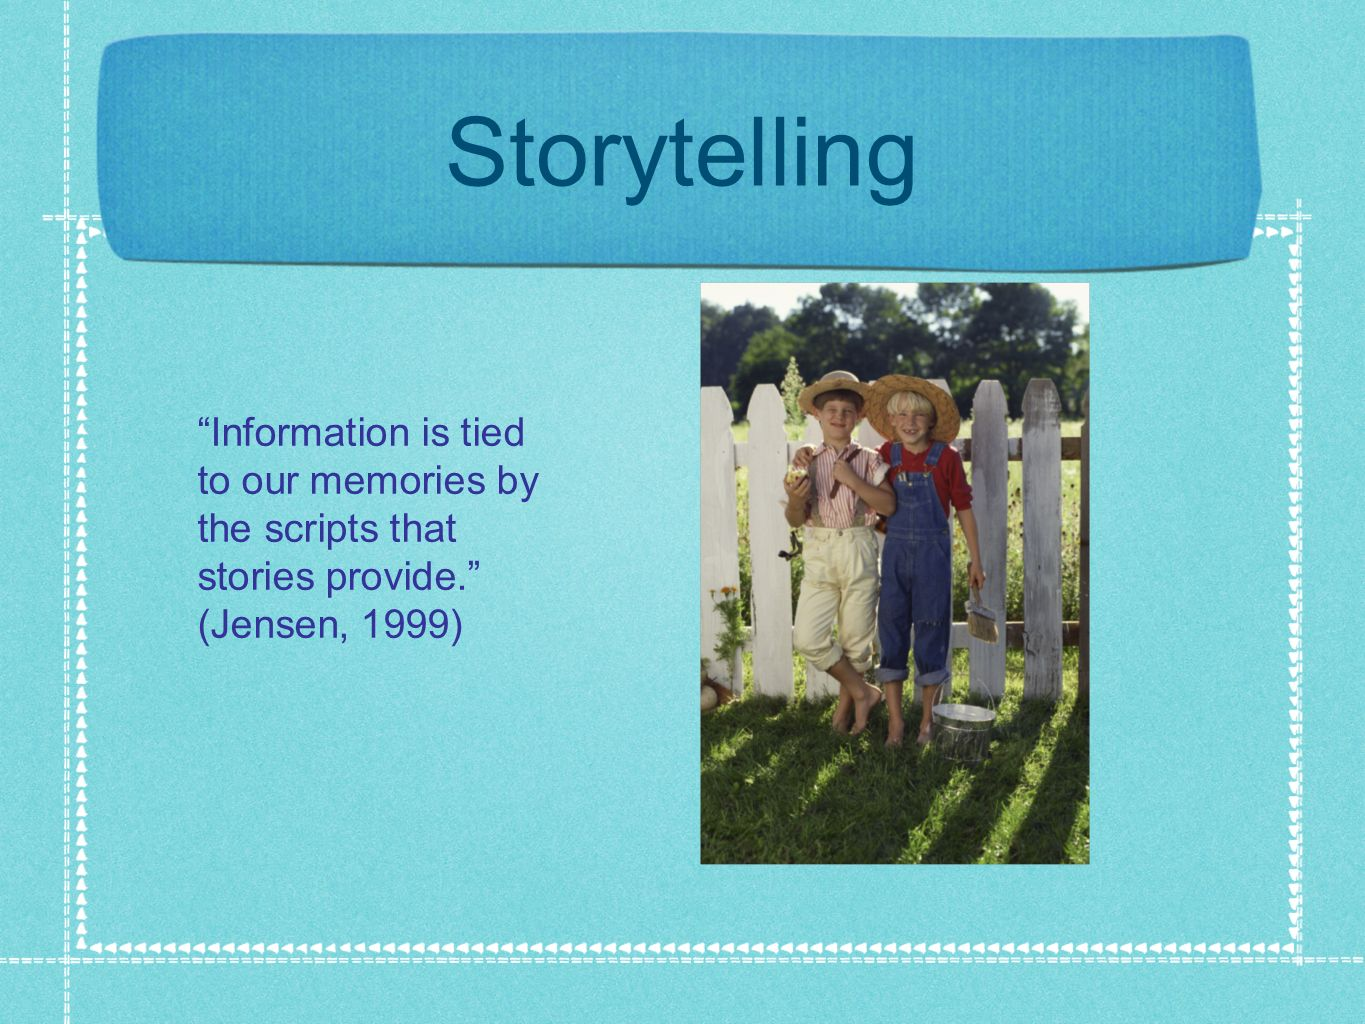 Storytelling Information is tied to our memories by the scripts that stories provide. (Jensen, 1999)